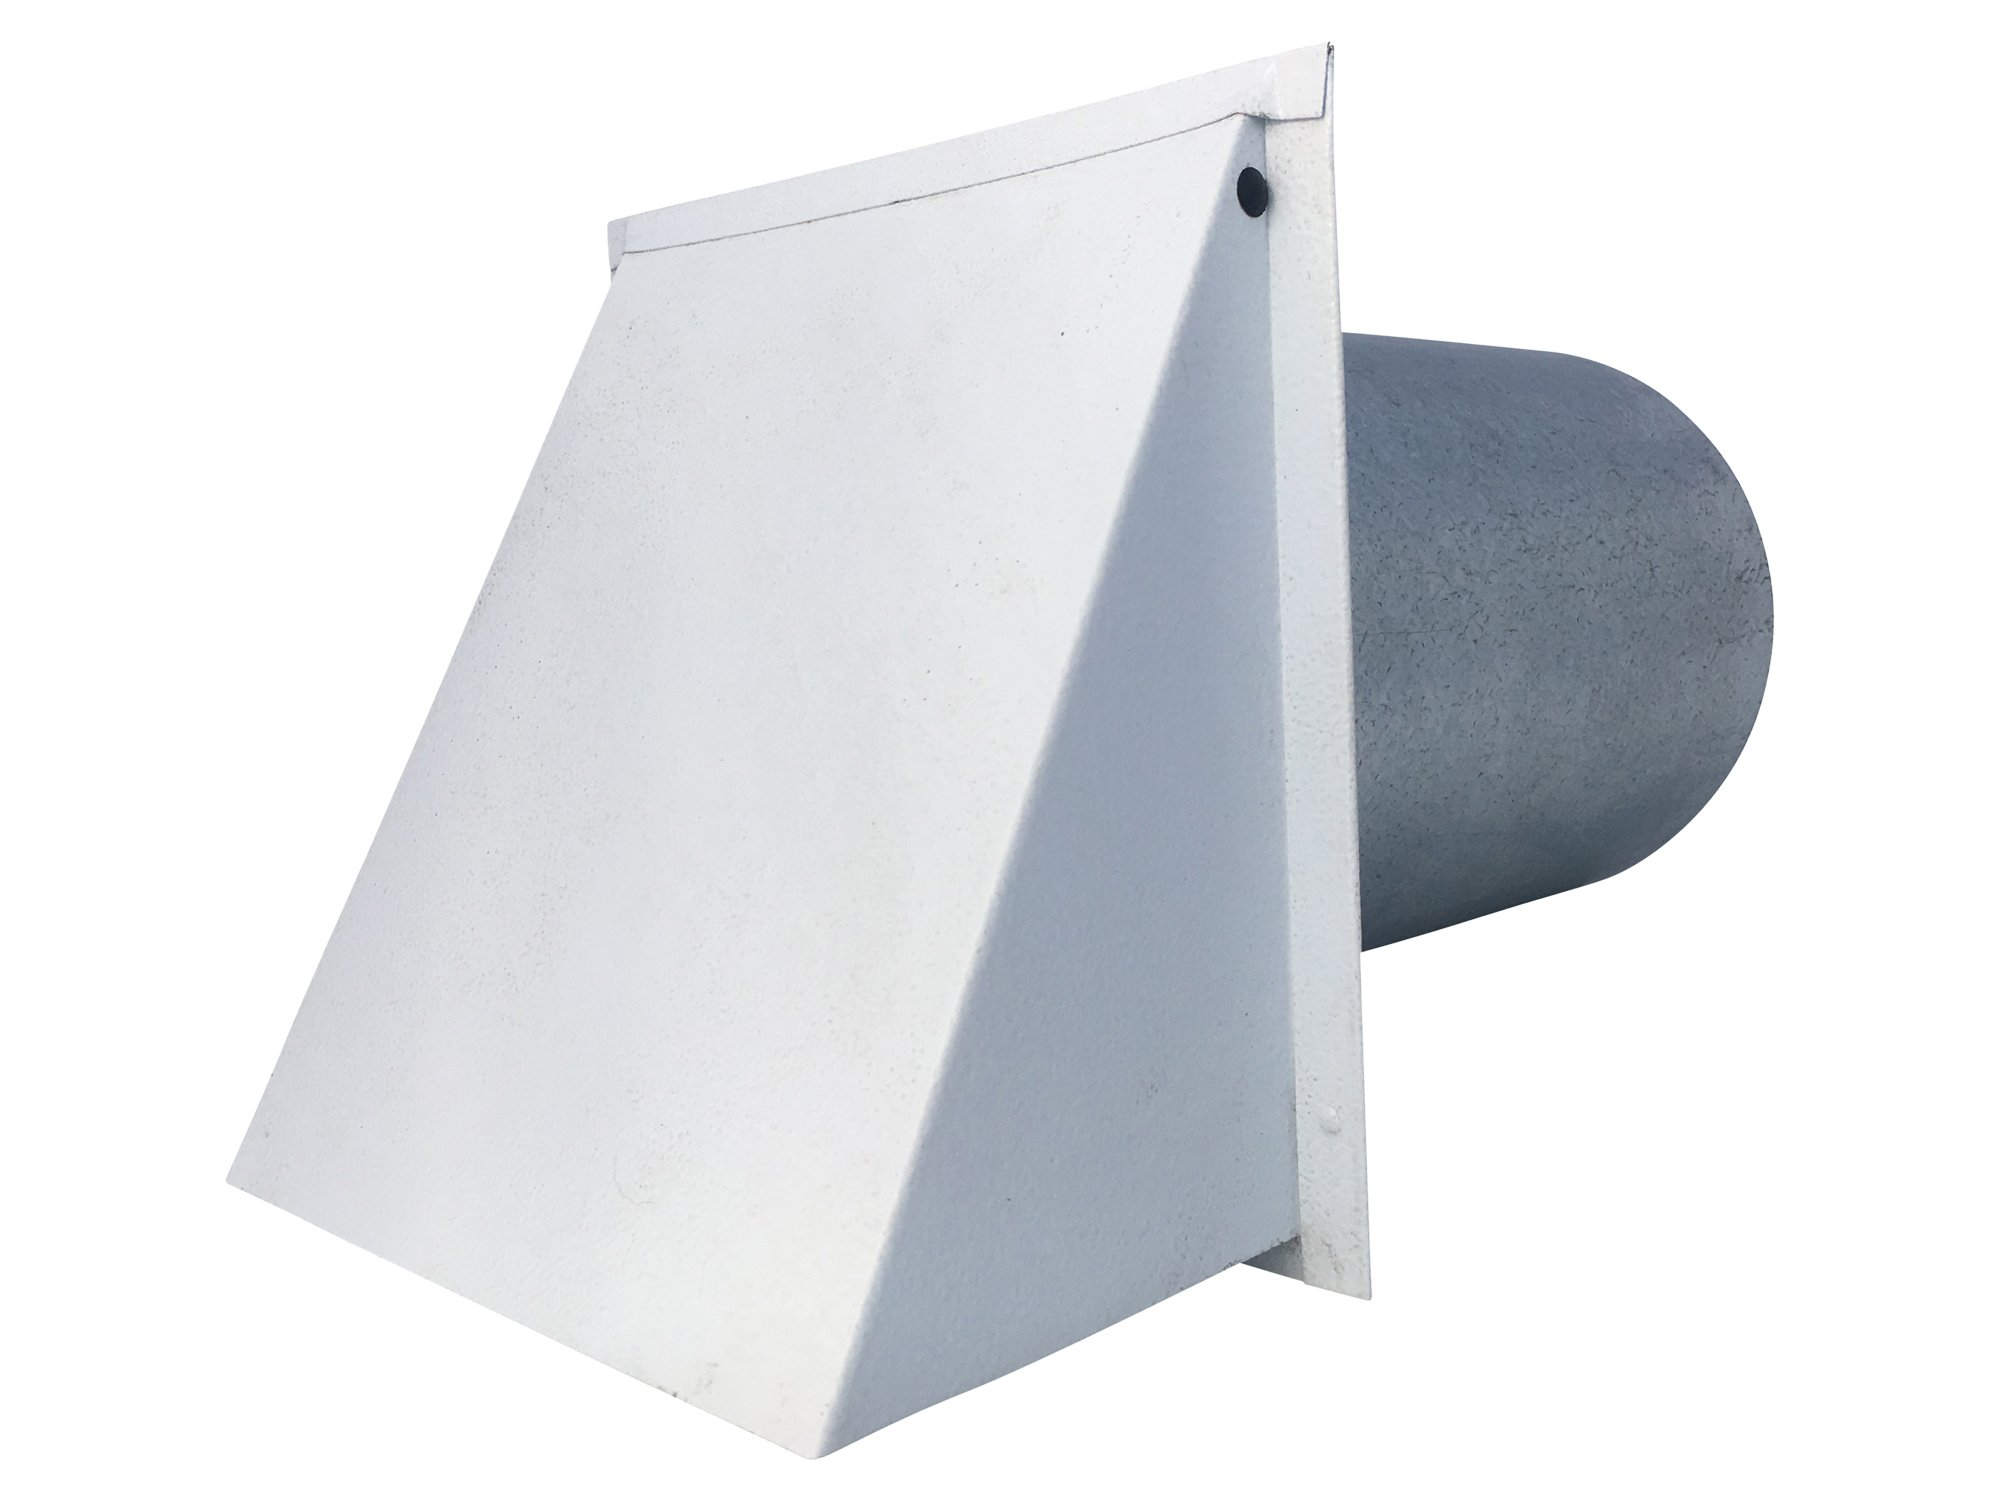 6 Inch Wall Vent Painted White Damper & Screen (6 Inch diameter) - Vent Works